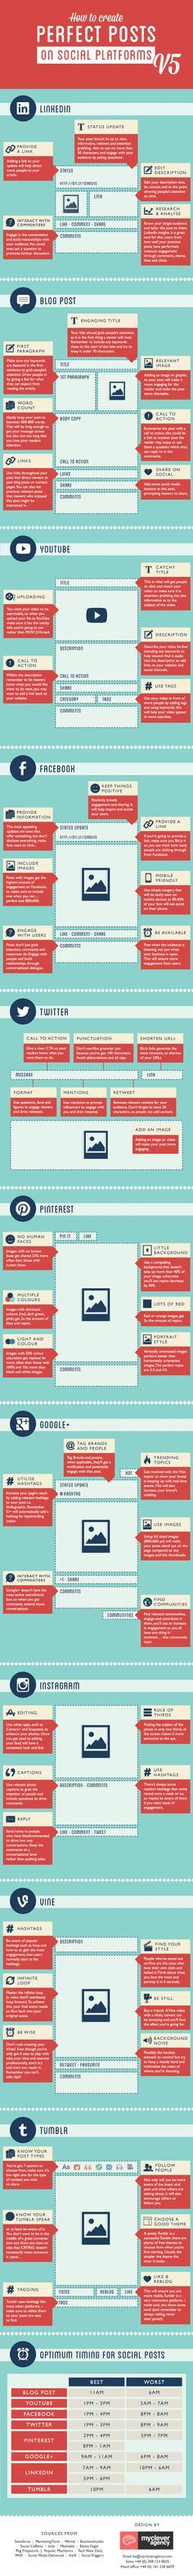 373 best SOCIAL MEDIA MARKETING images on Pinterest Social media - comparison template word